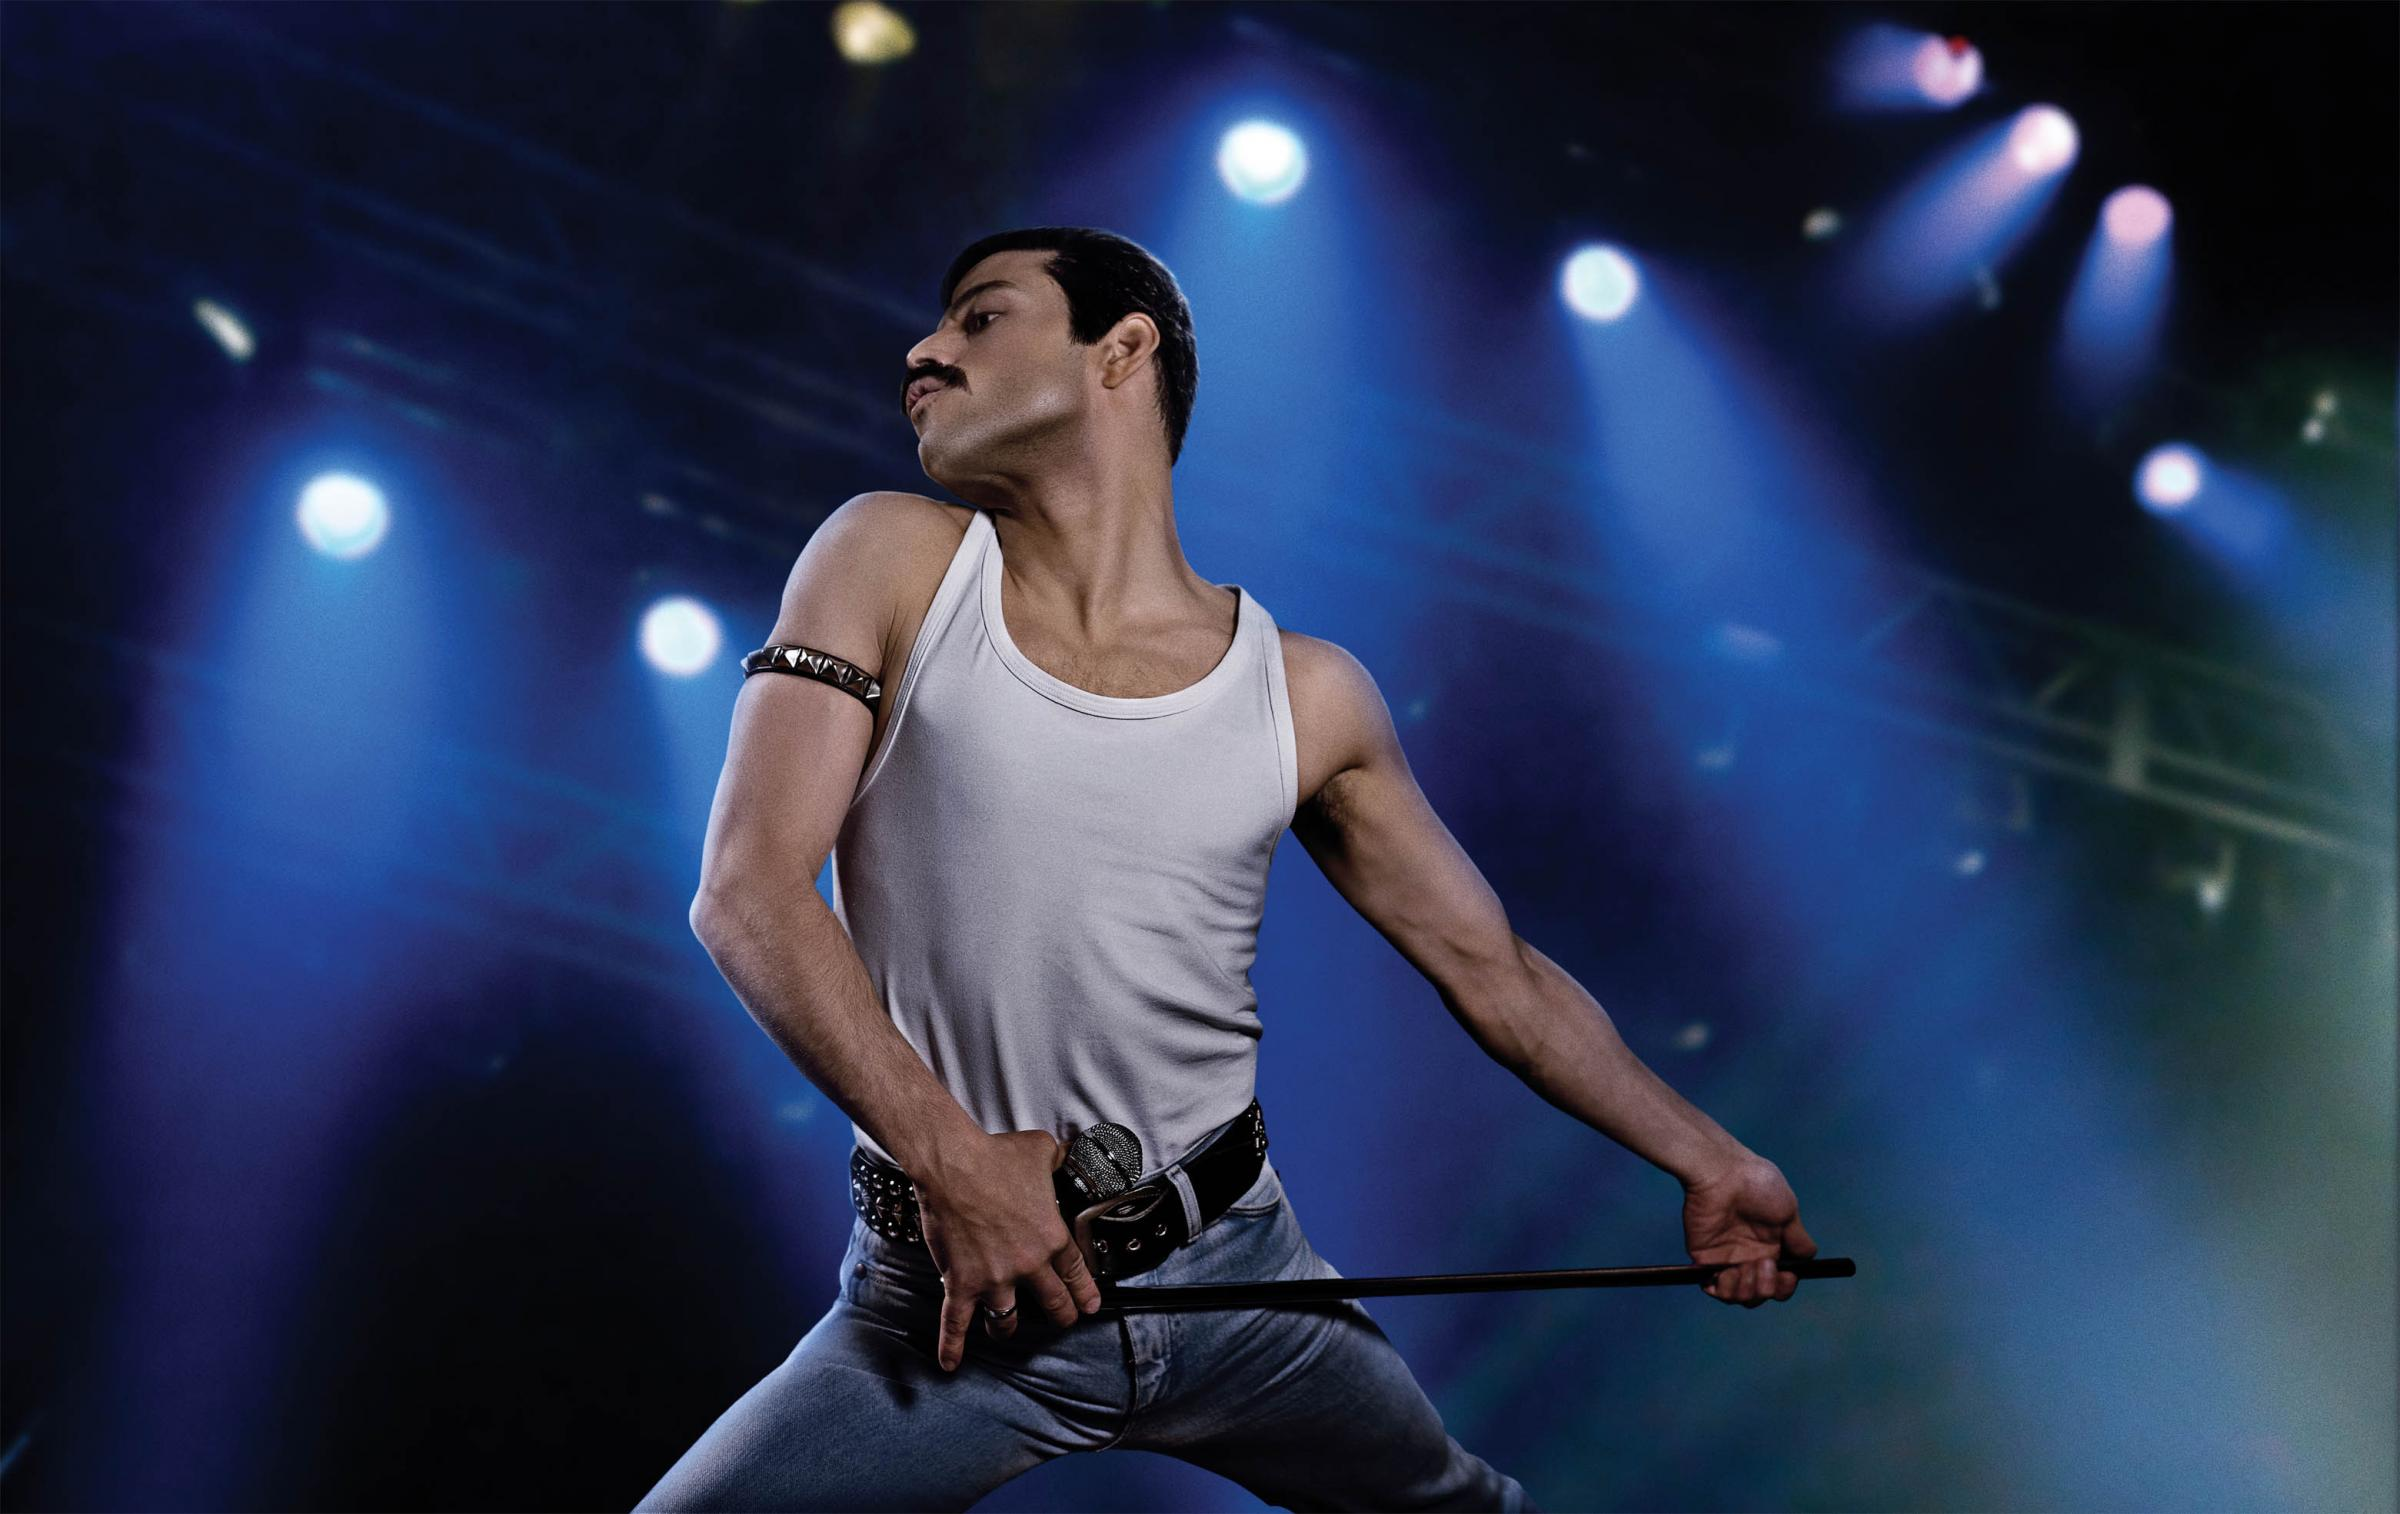 Leeds cinemas to host singalong screenings of Bohemian Rhapsody